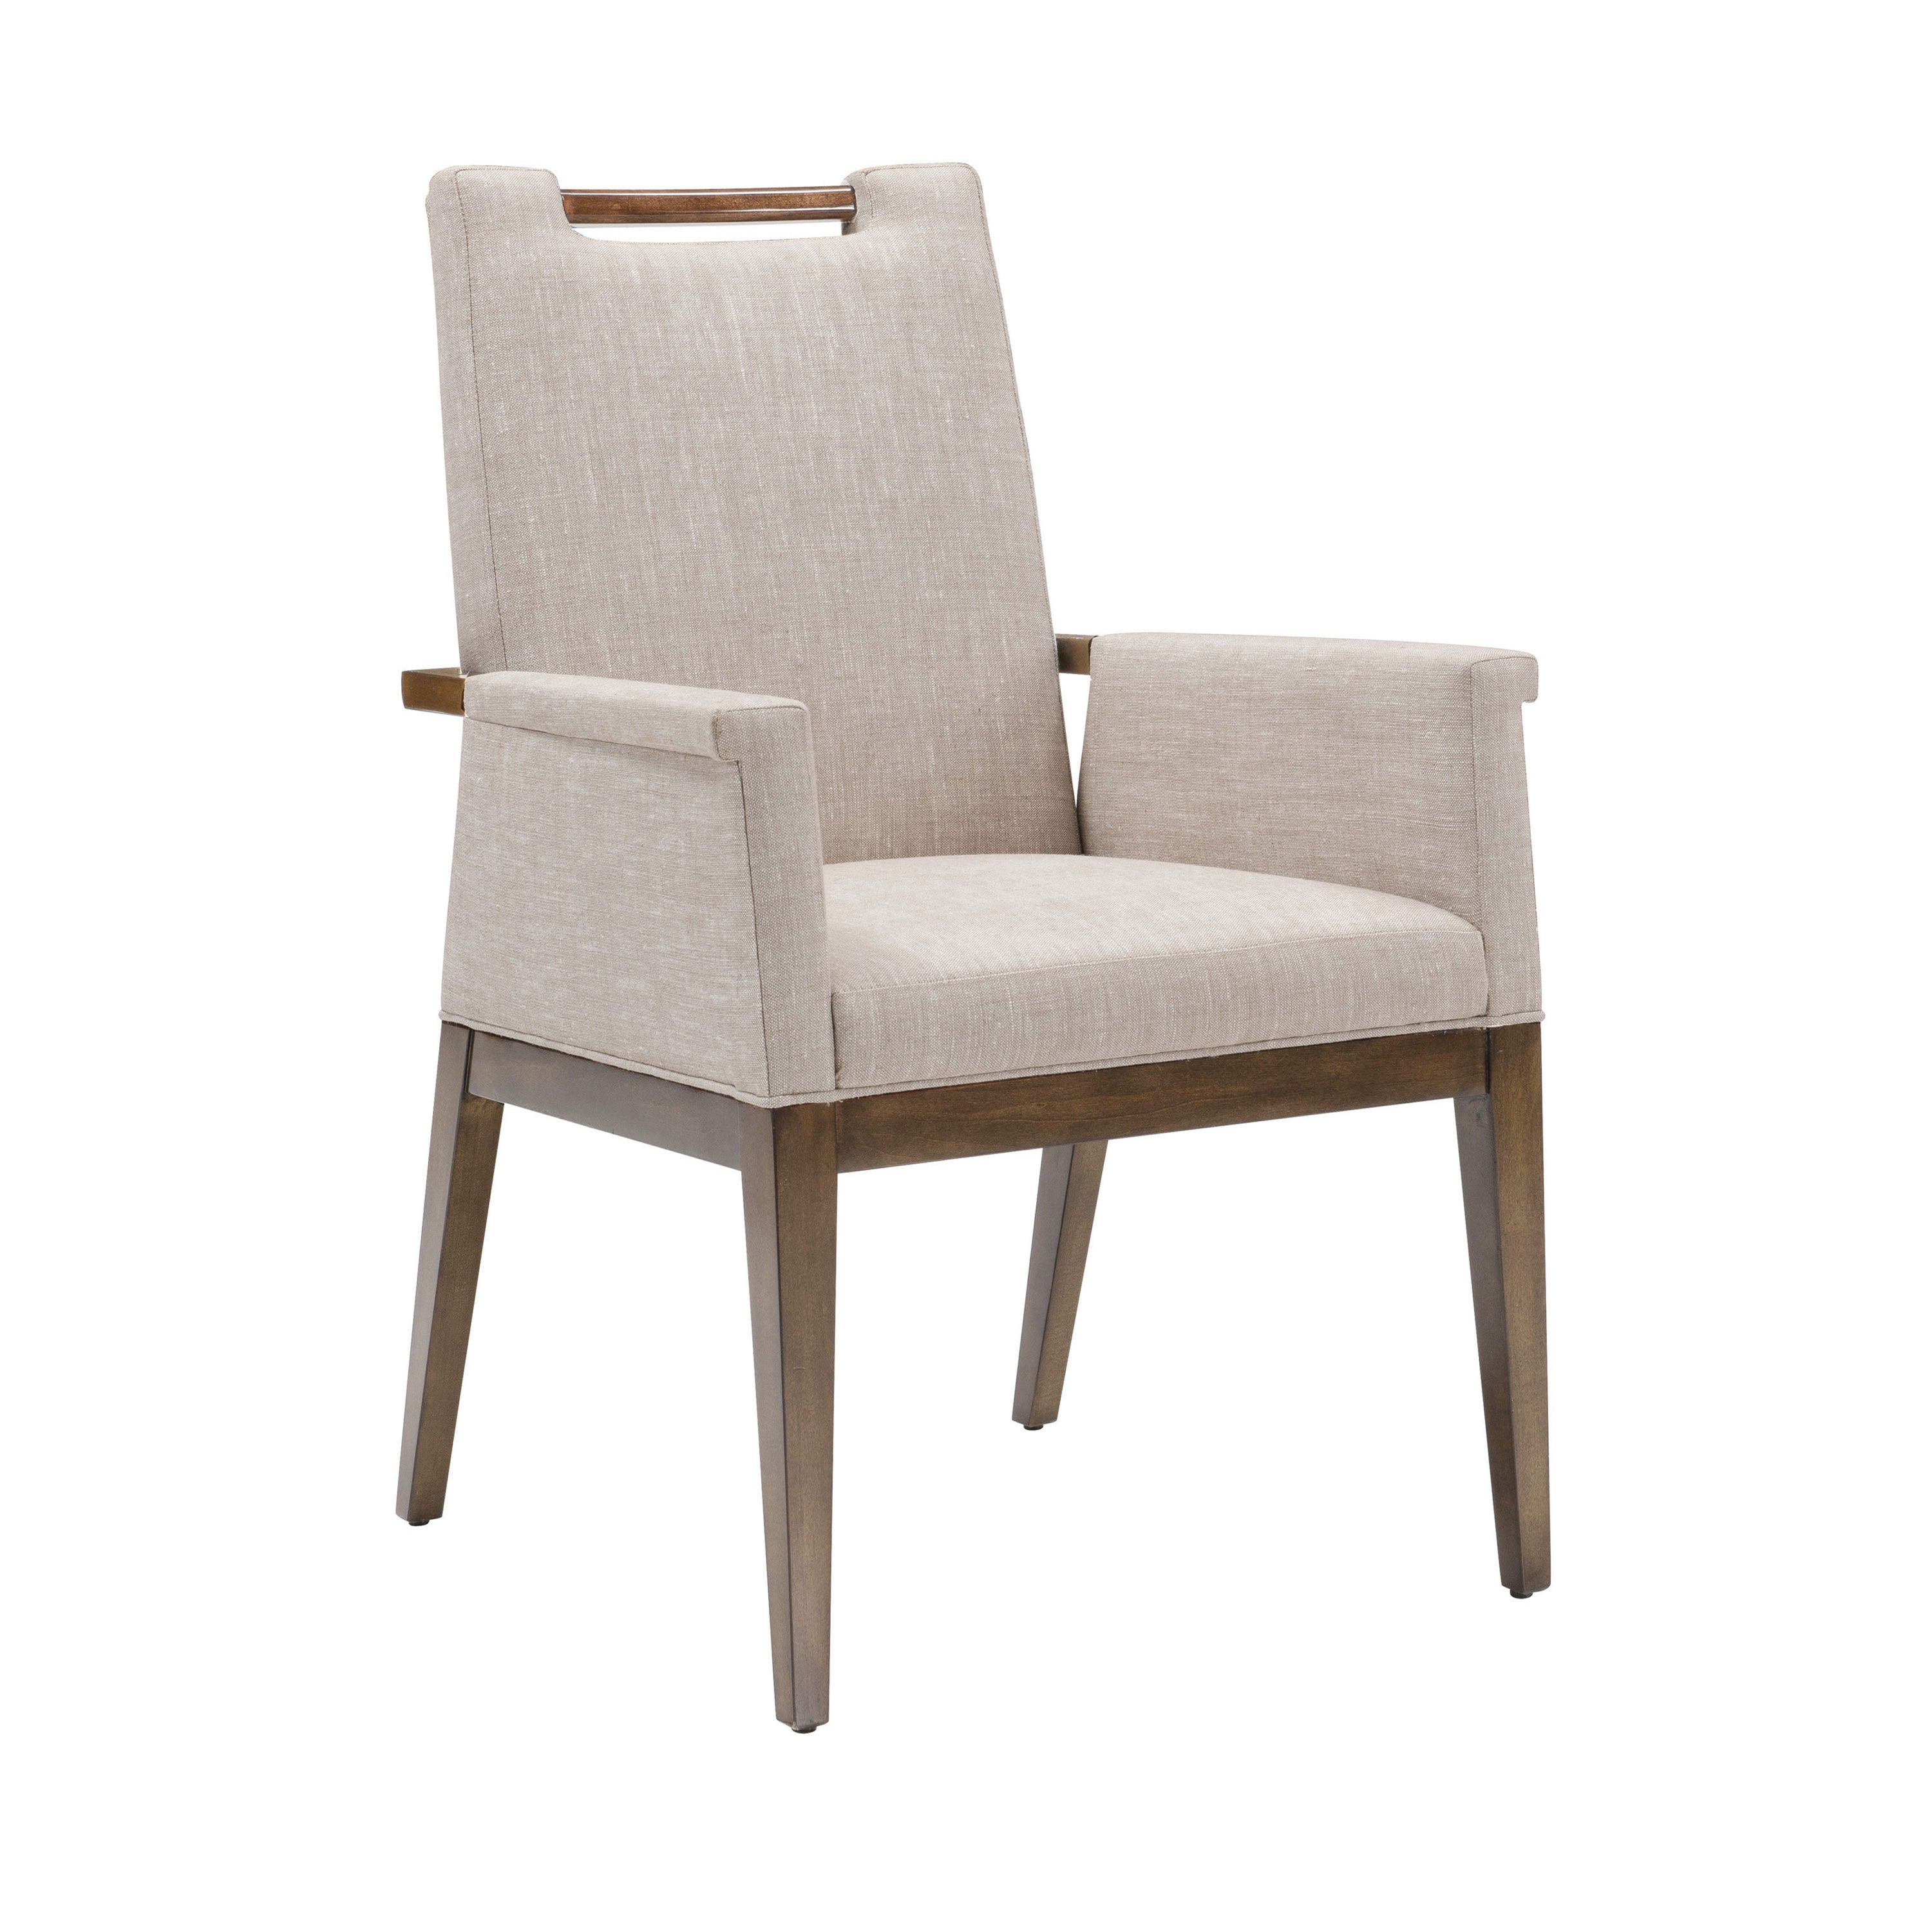 Liv Arm Chair Luxury Dining Chair Furniture Wicker Dining Chairs